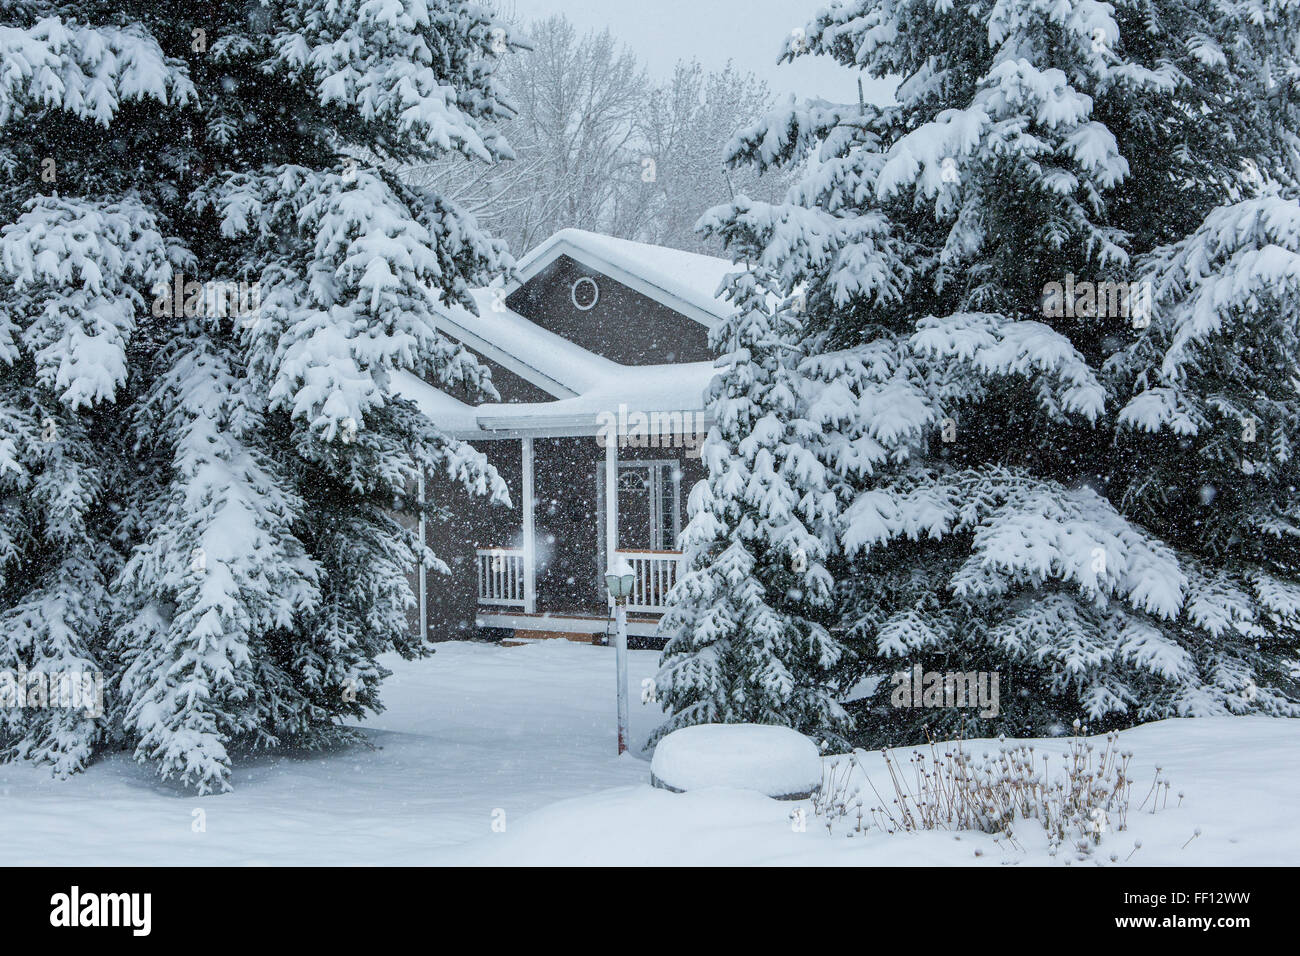 House and trees in snowy front yard Stock Photo